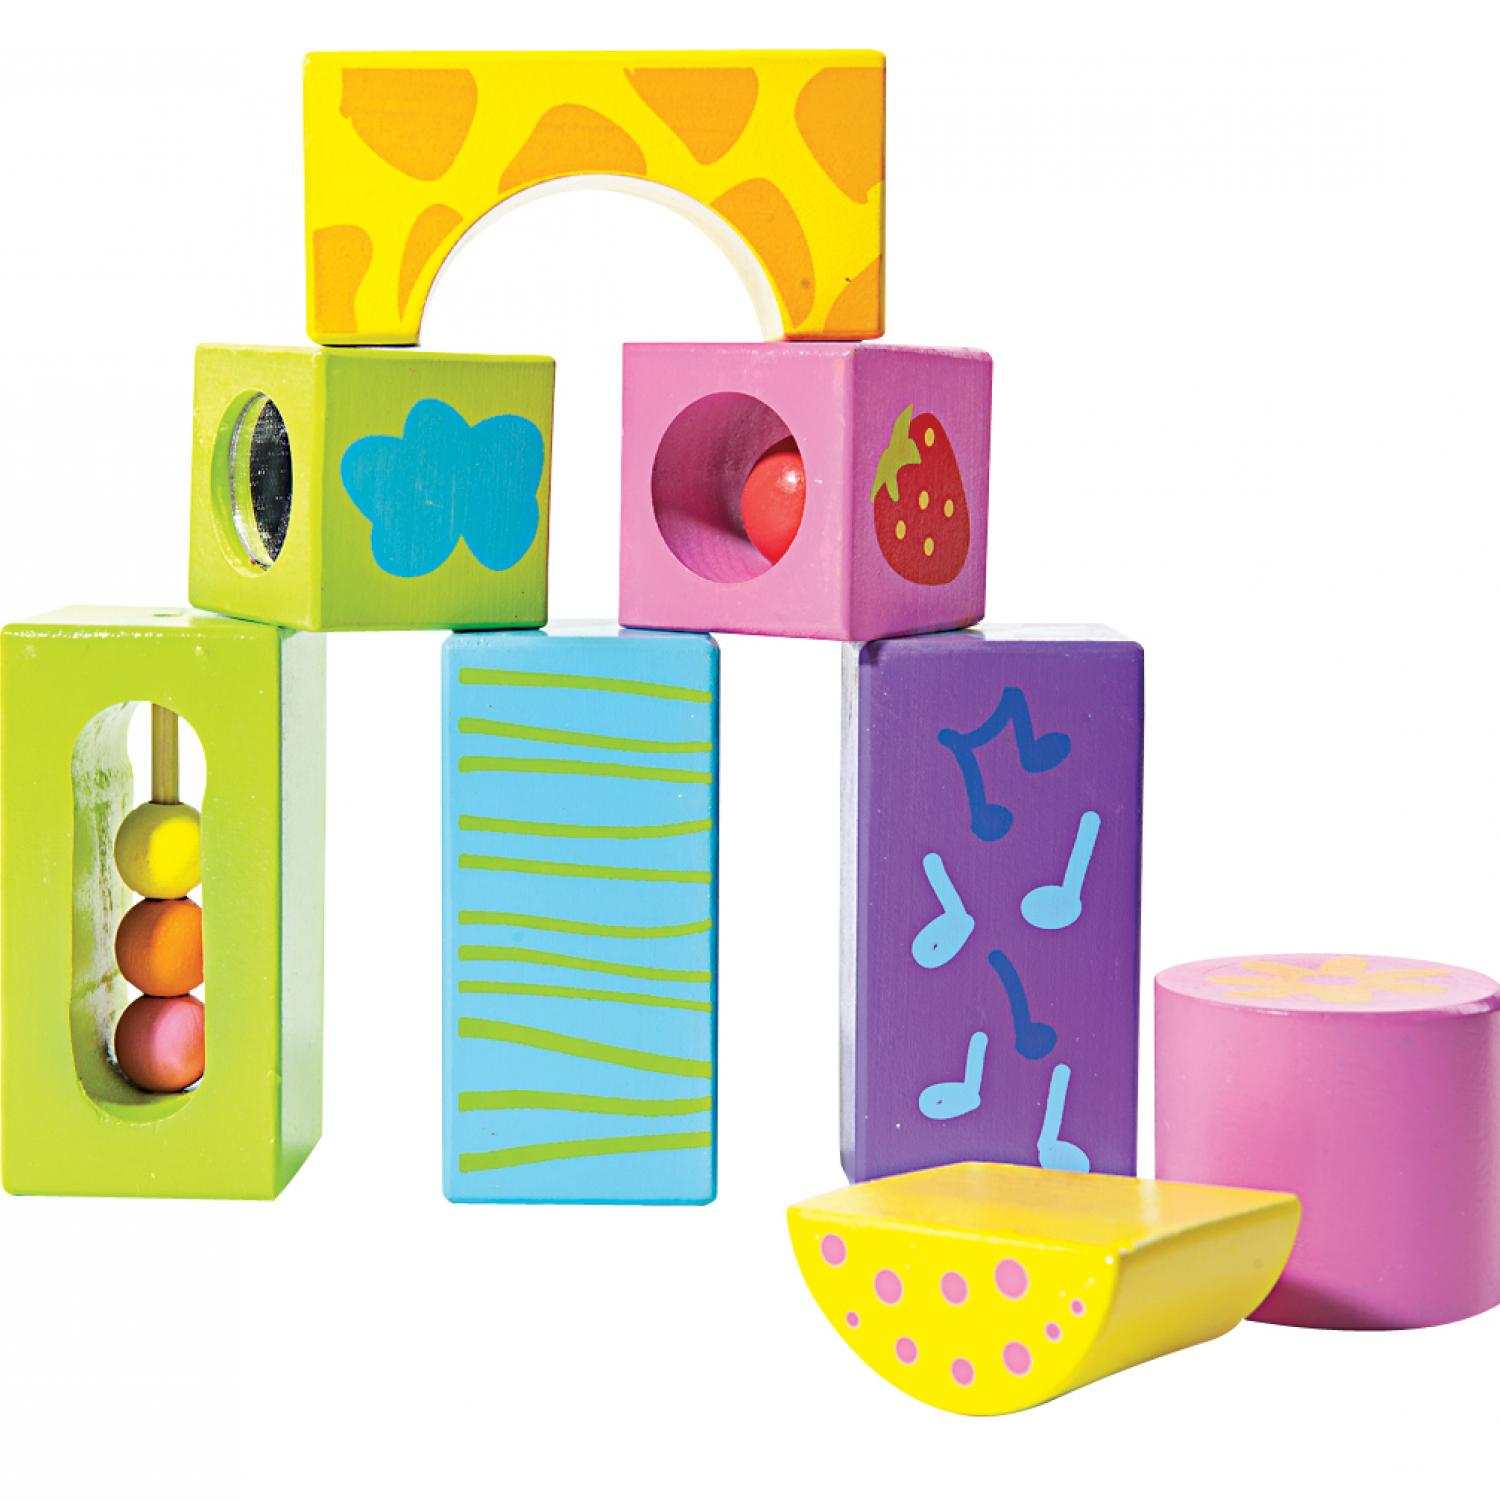 14 Great Educational Baby Toys